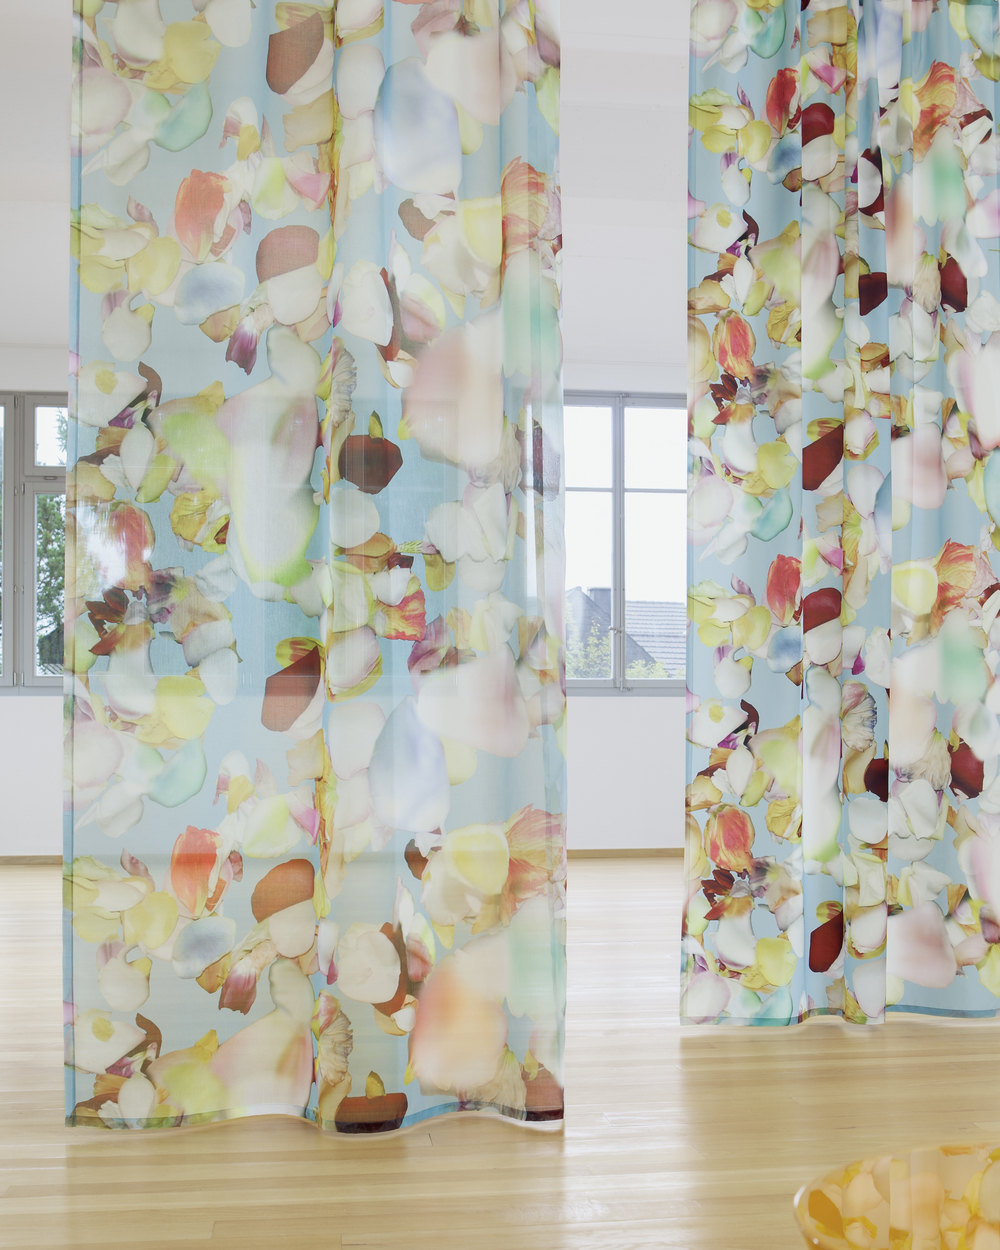 Blossom S transparent curtain fabric from Creation Baumann